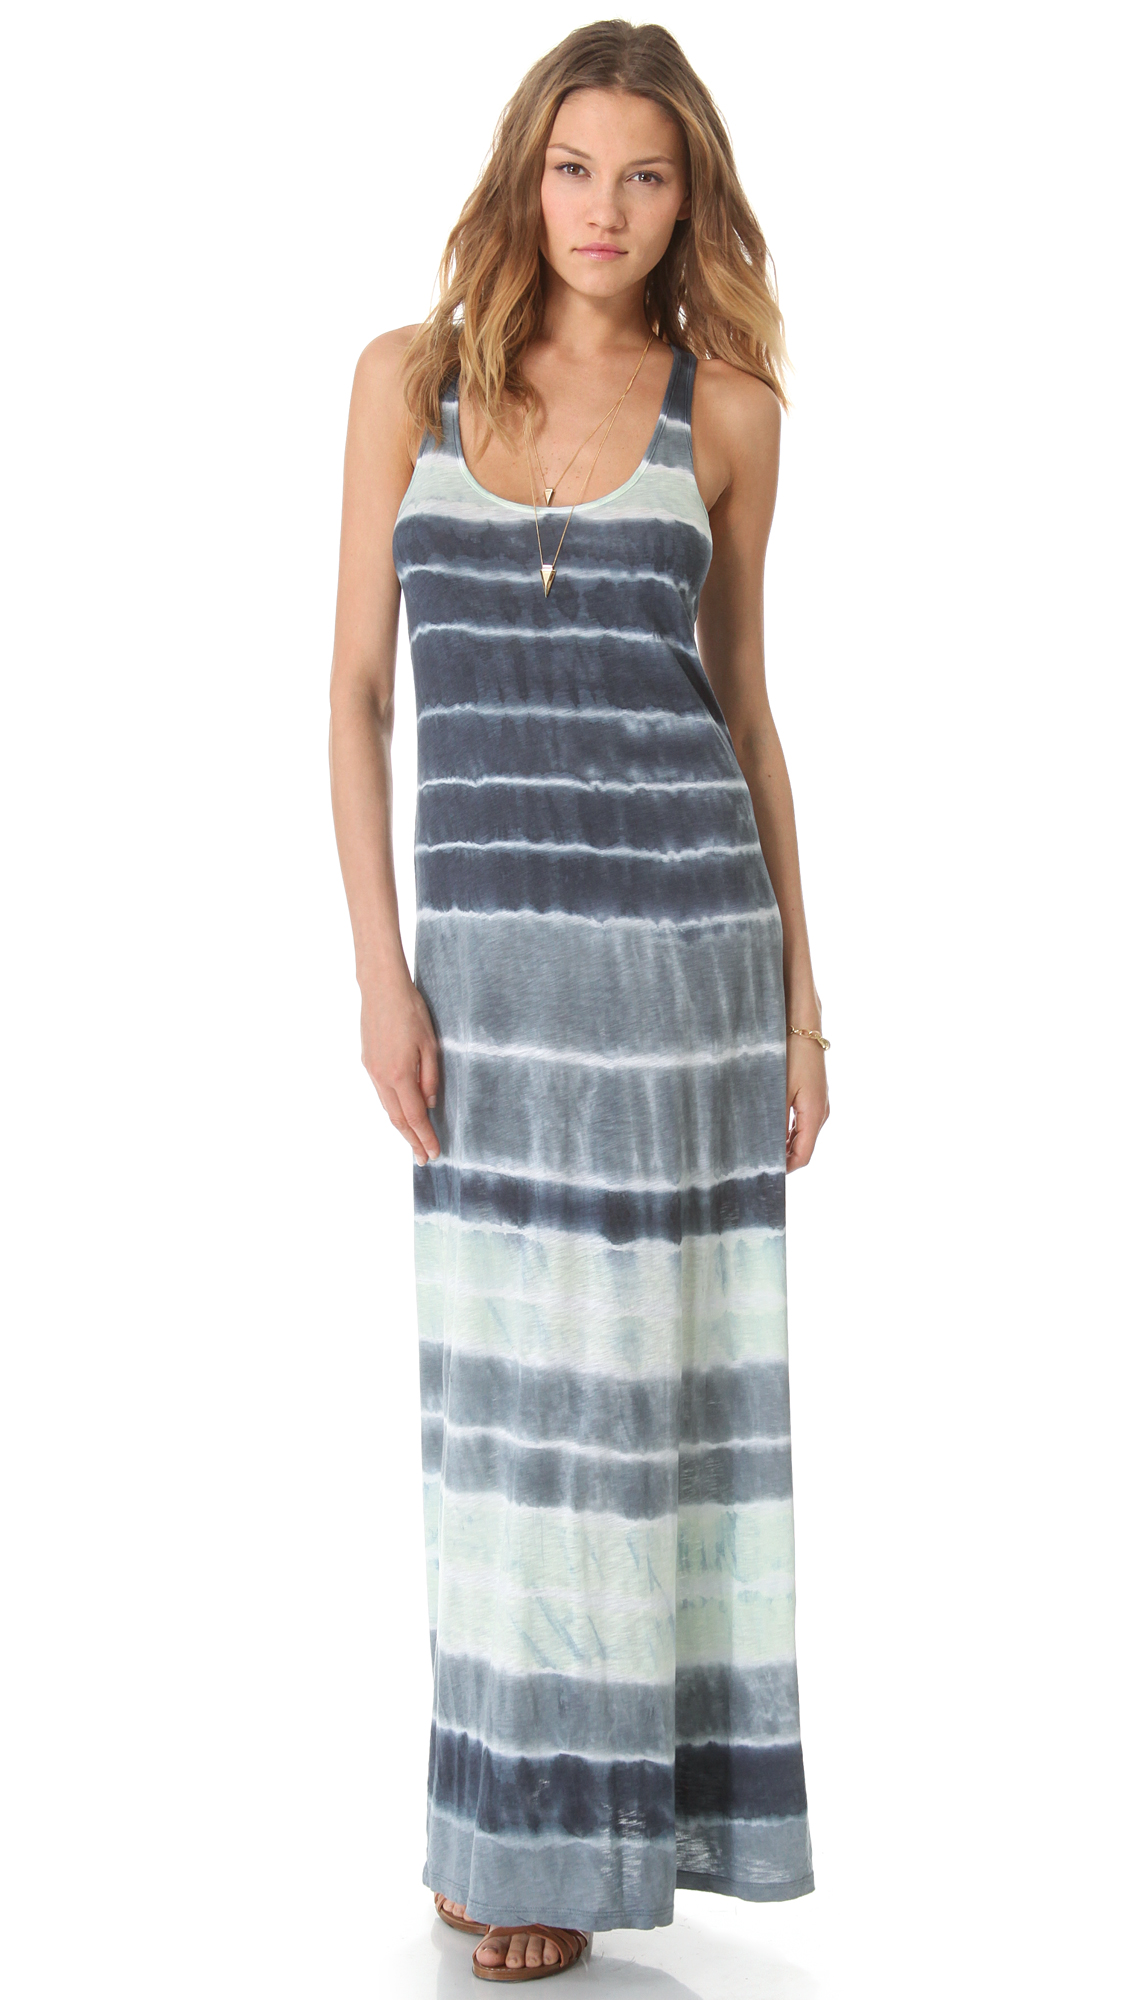 Velvet laura tie dye maxi tank dress